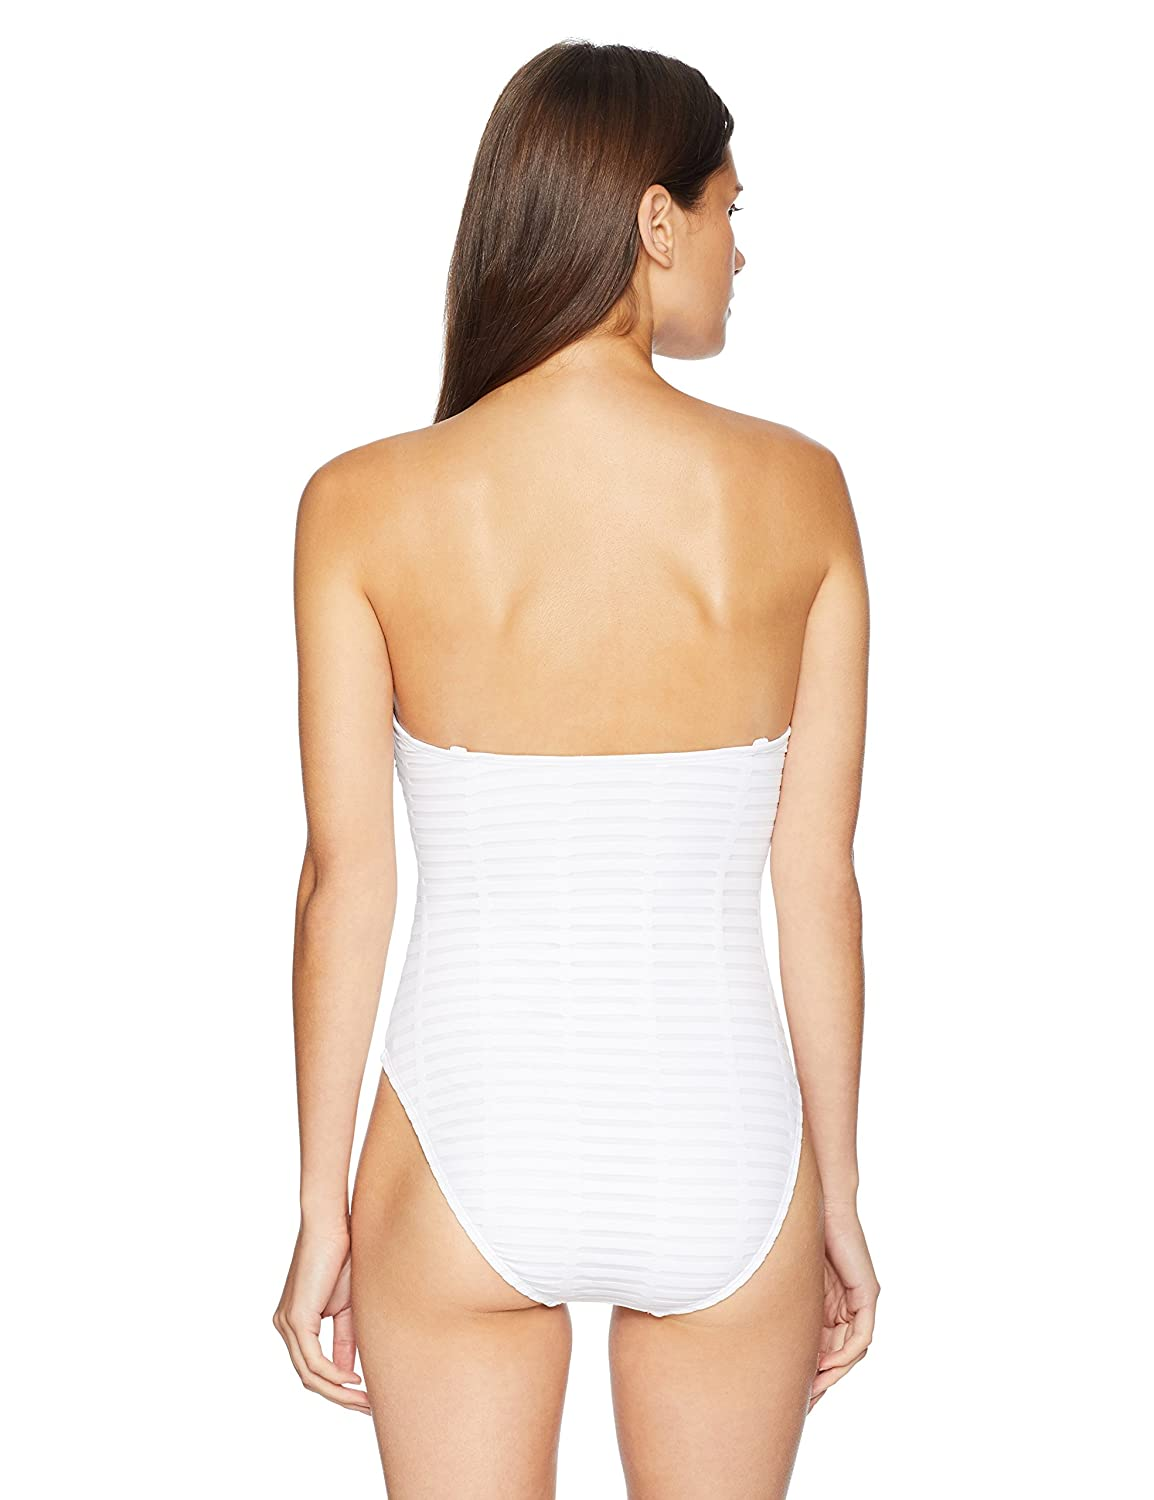 Kenneth Cole New York Womens Bandeau One Piece Swimsuit